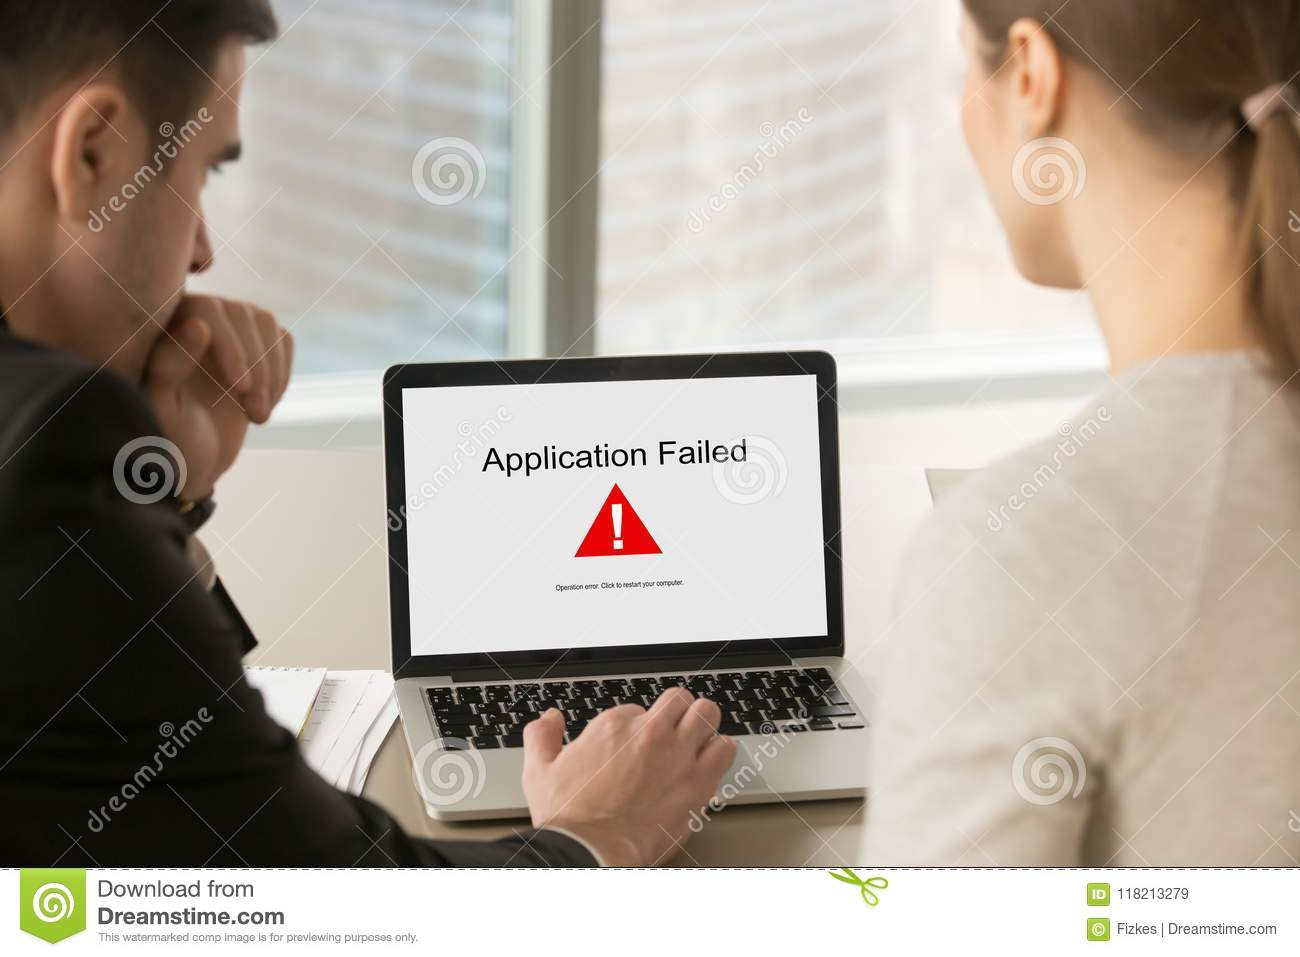 Business people looking at laptop screen with Application Failed